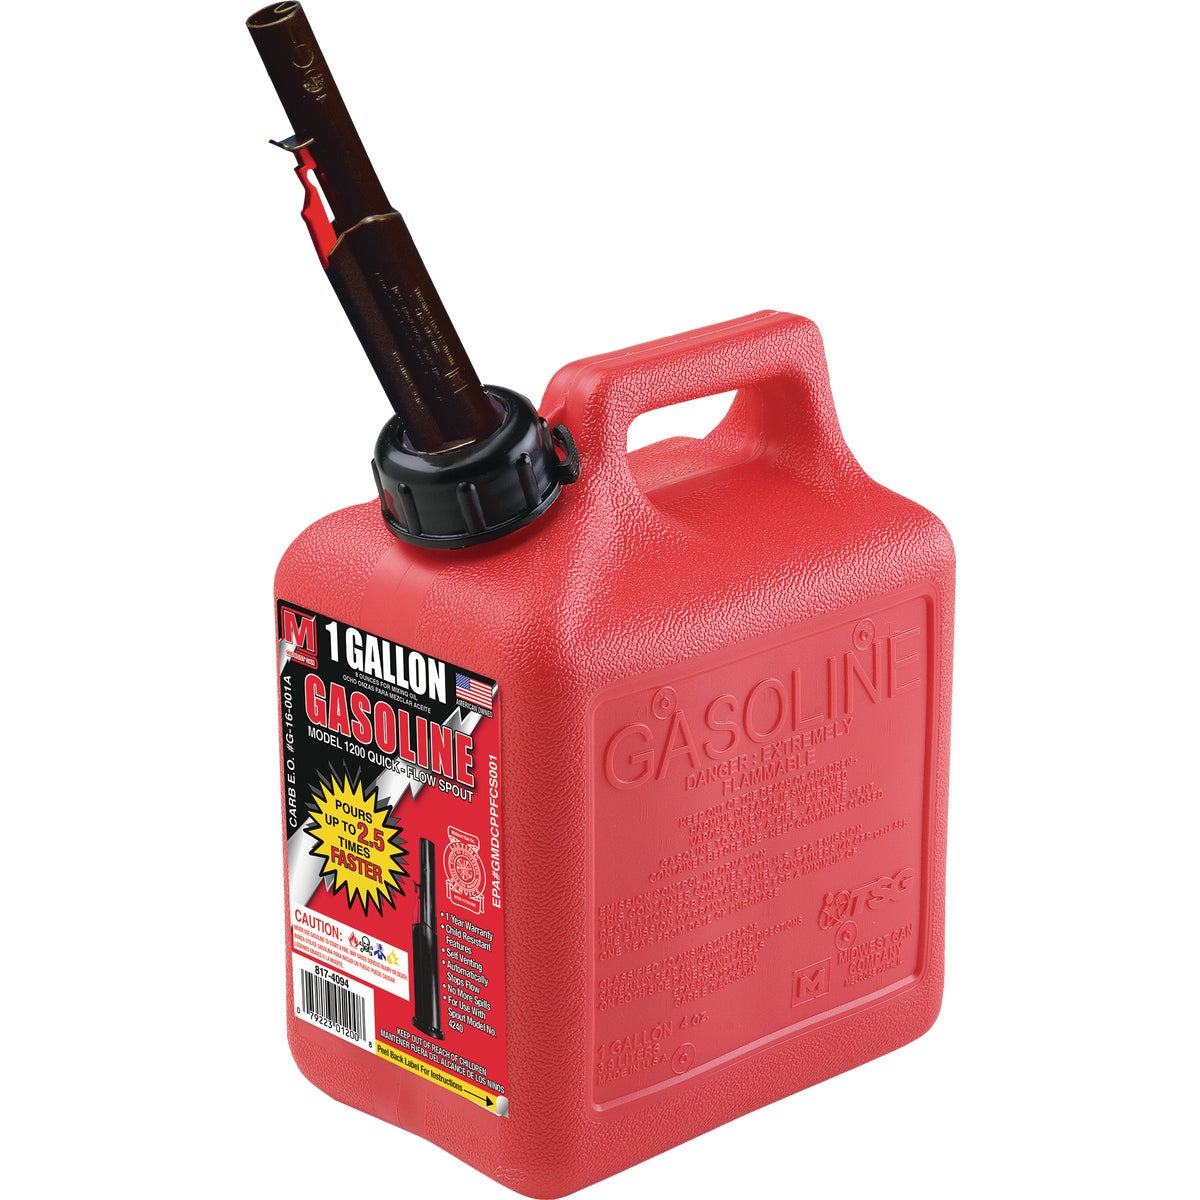 1 GALLON GAS CAN - 1200 by Midwest Can